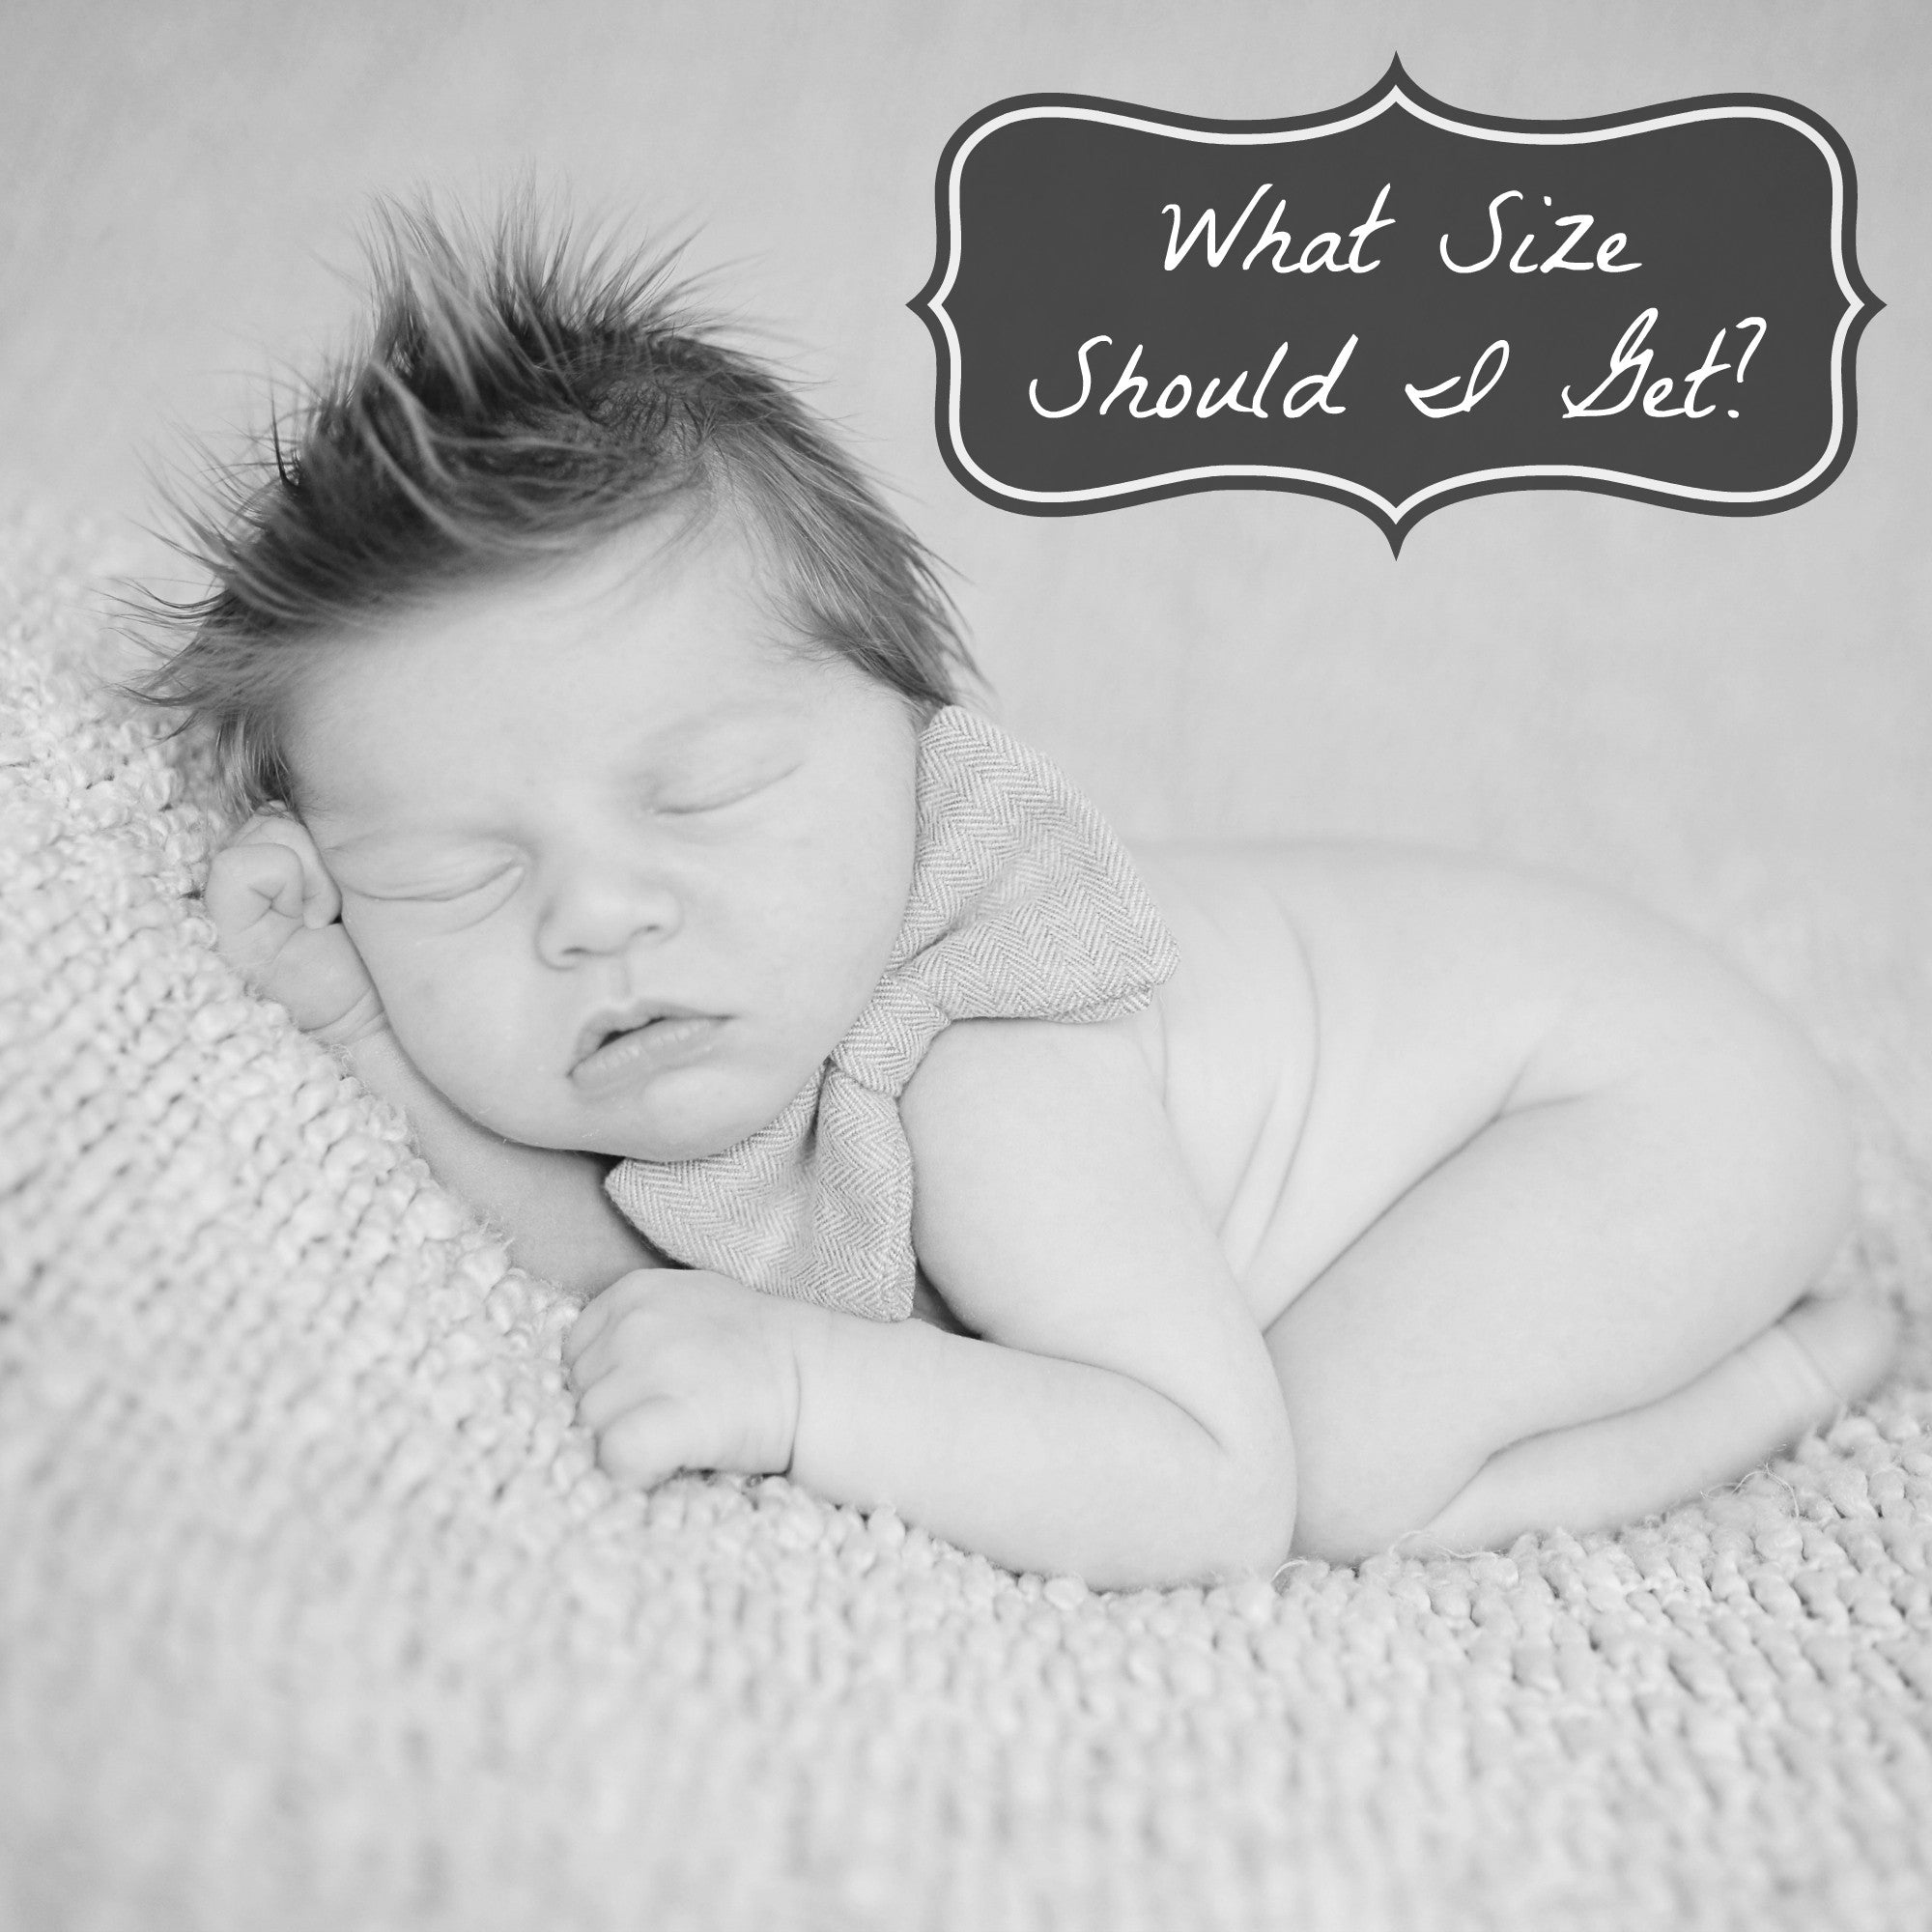 What size should I get? Predicting your newborn baby's size for a coming home outfit.